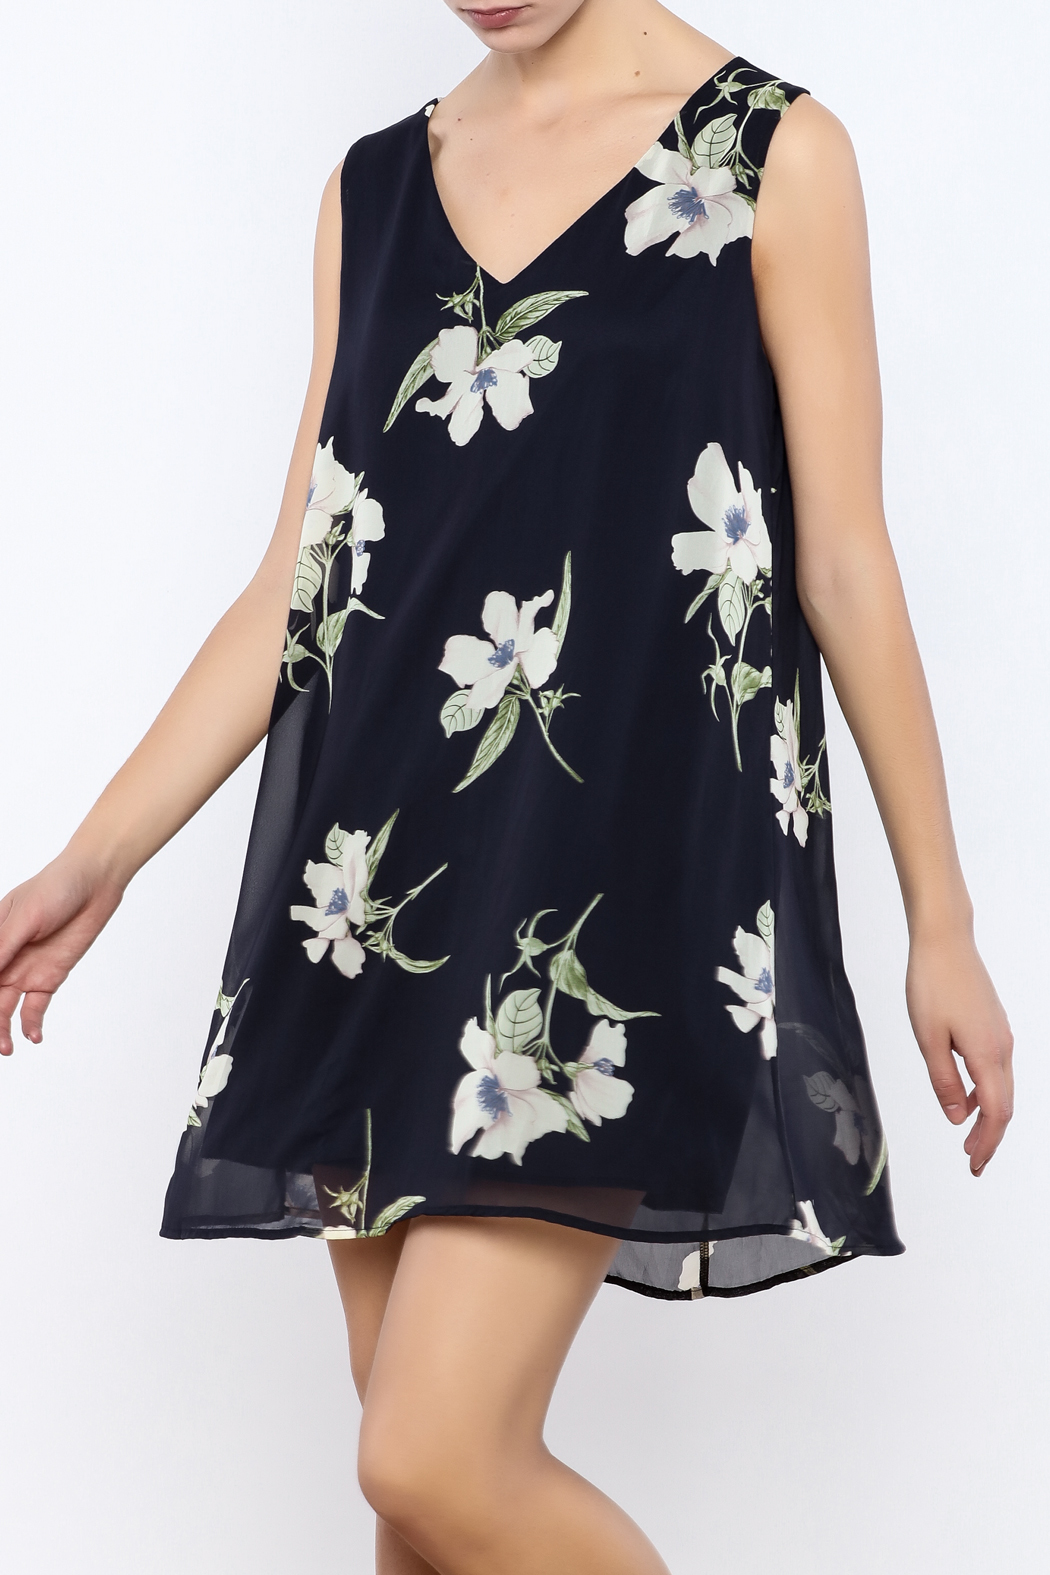 Bacio Blue Floral Dress - Main Image